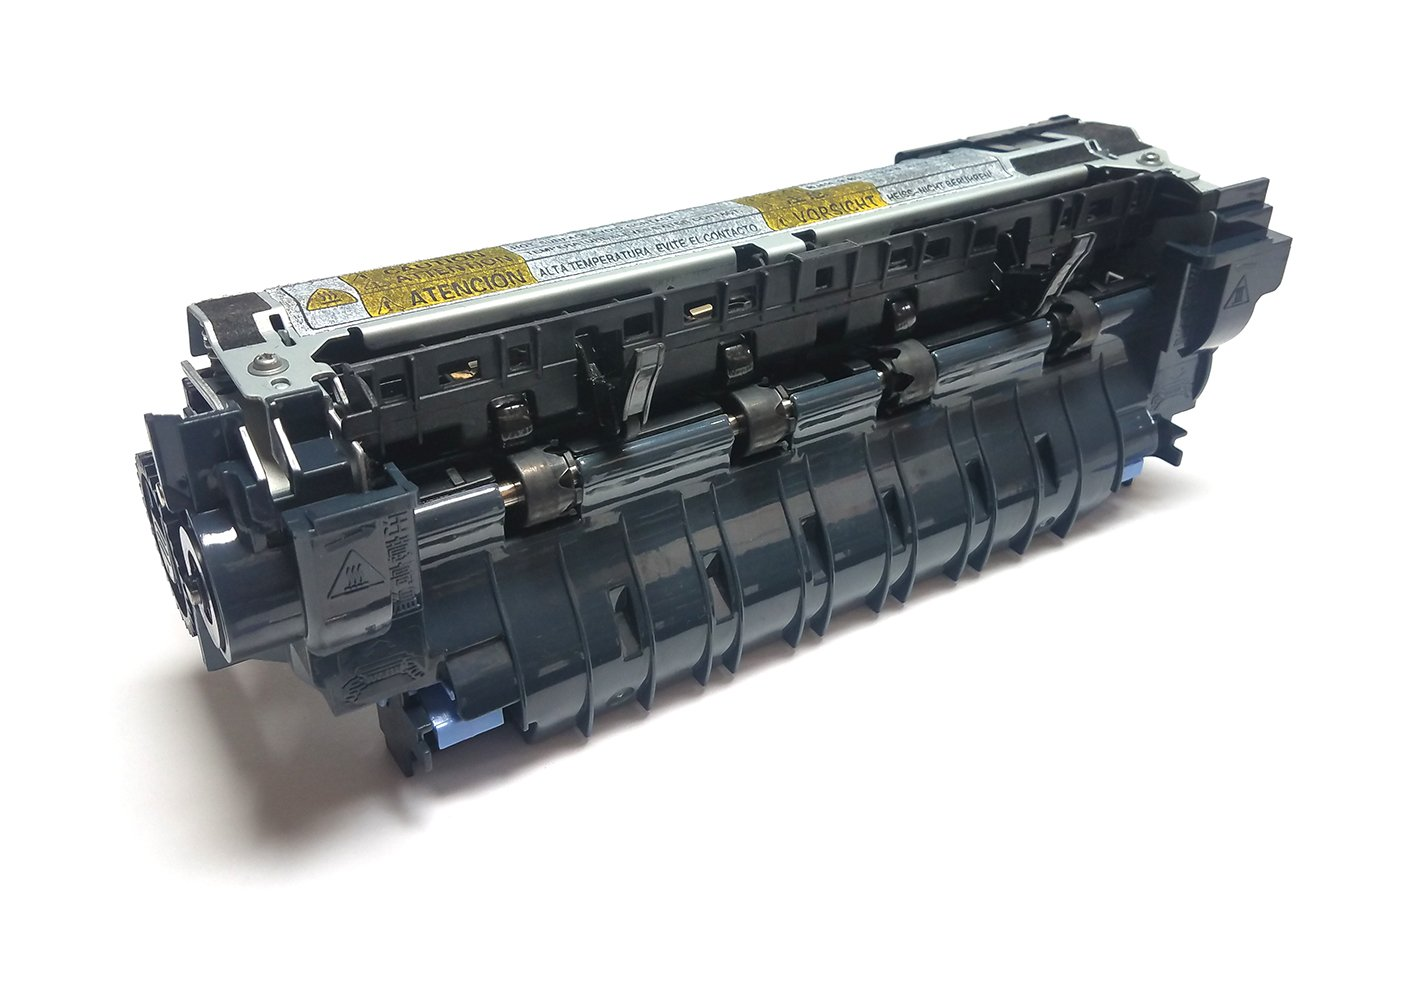 Altru Print F2G76A-AP (E6B67-67901, F2G76-67901) Maintenance Kit for HP LaserJet M604, M605, M606 (110V) includes RM2-6308 Fuser, Transfer Roller and Tray 2-6 Rollers by Altru Print (Image #2)